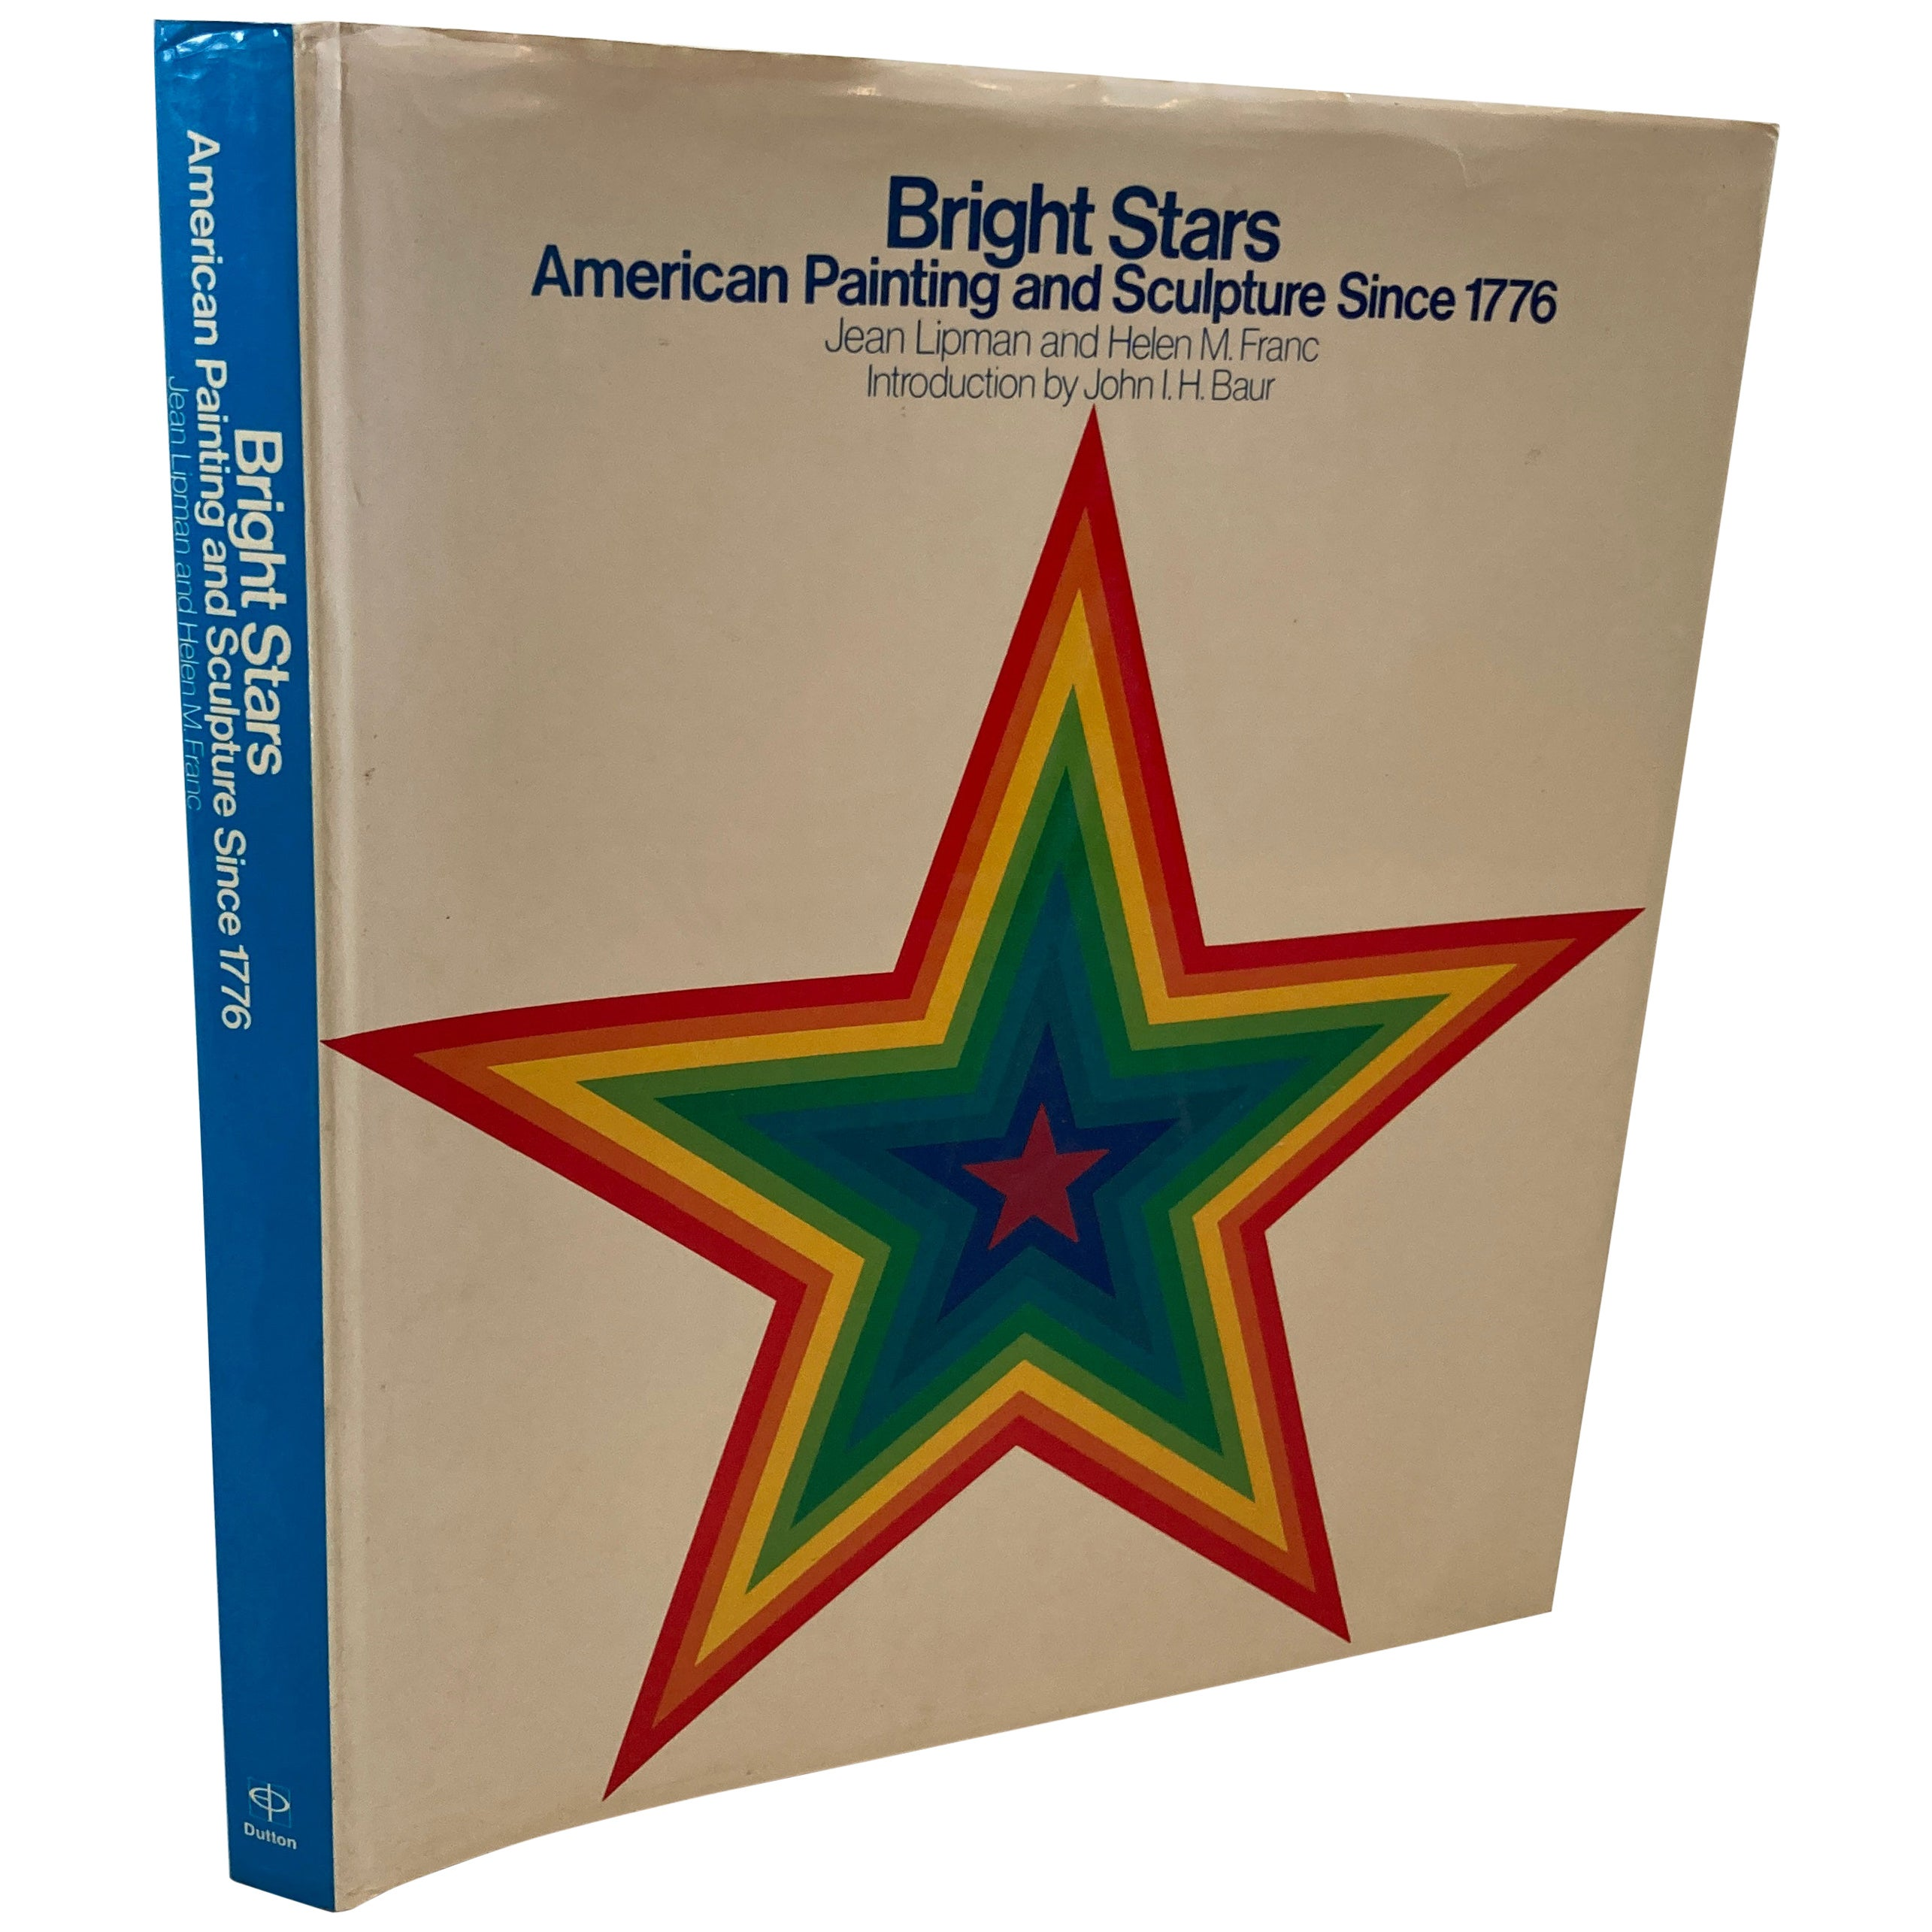 Bright Stars American Painting and Sculpture Since 1776 Hardcover Book